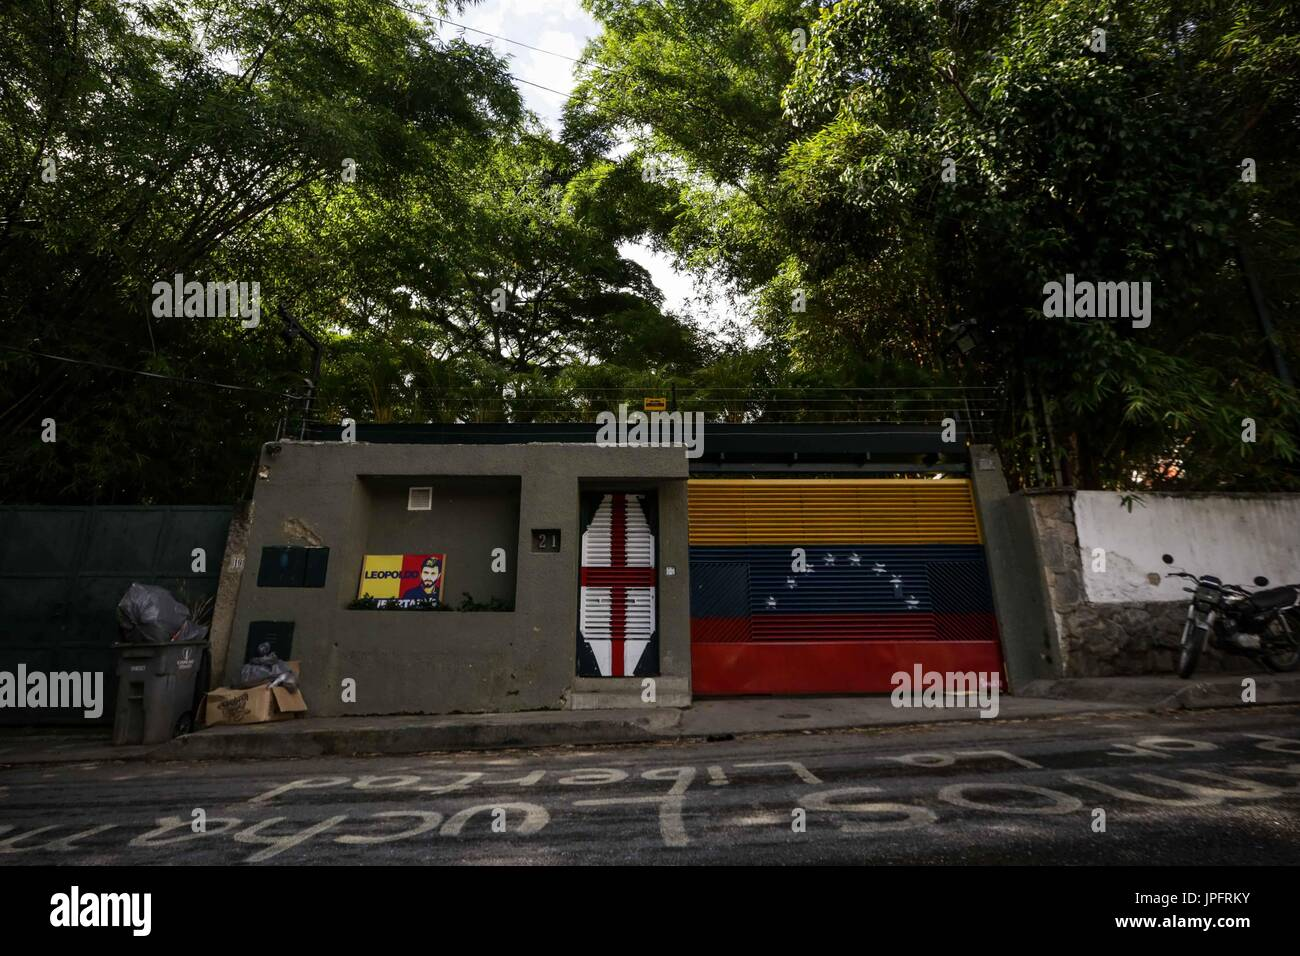 A view of the exterior of Leopoldo Lopez's house in Caracas, Venezuela, 01 August 2017. Venezuelan opposition leaders Leopoldo Lopez and Antonio Ledezma had their home arrest revocated for alleged escape suspicions by the Attorneys Office, and put back to jail at the Ramo Verde military prison. EFE/Cristian Hernandez - Stock Image